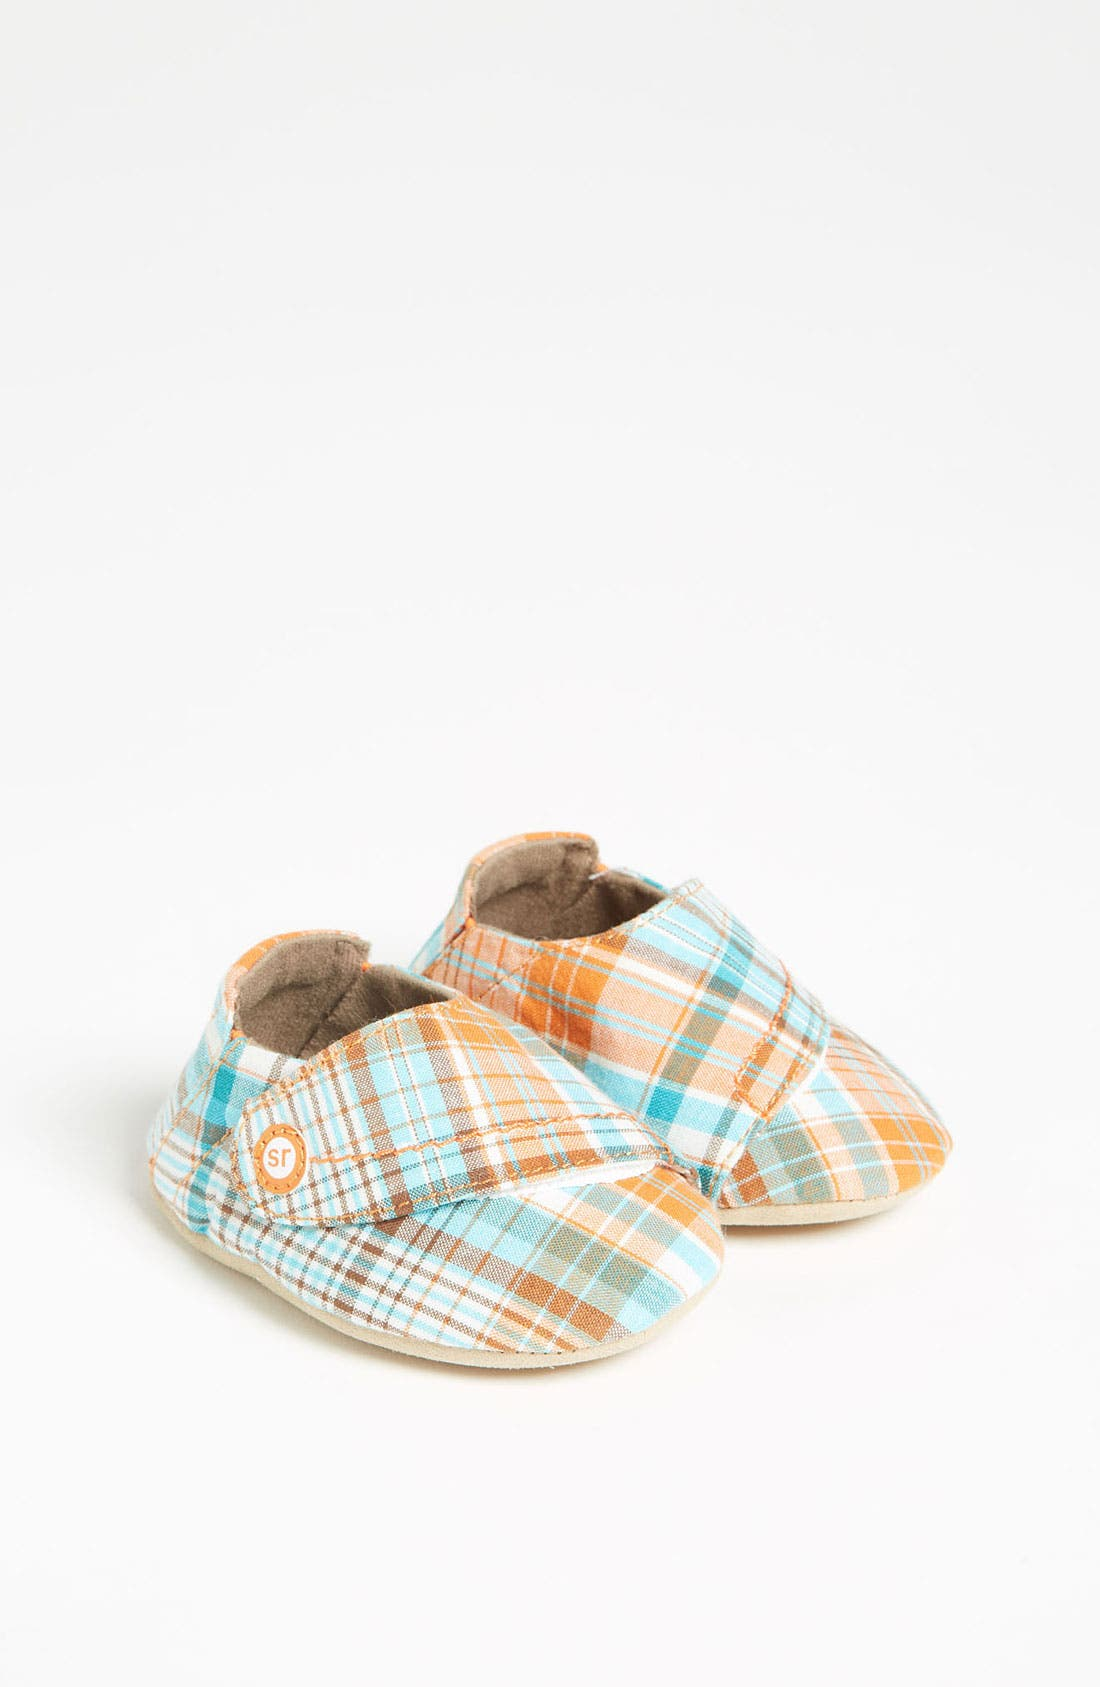 Main Image - Stride Rite 'Mad For Plaid' Crib Shoe (Baby)